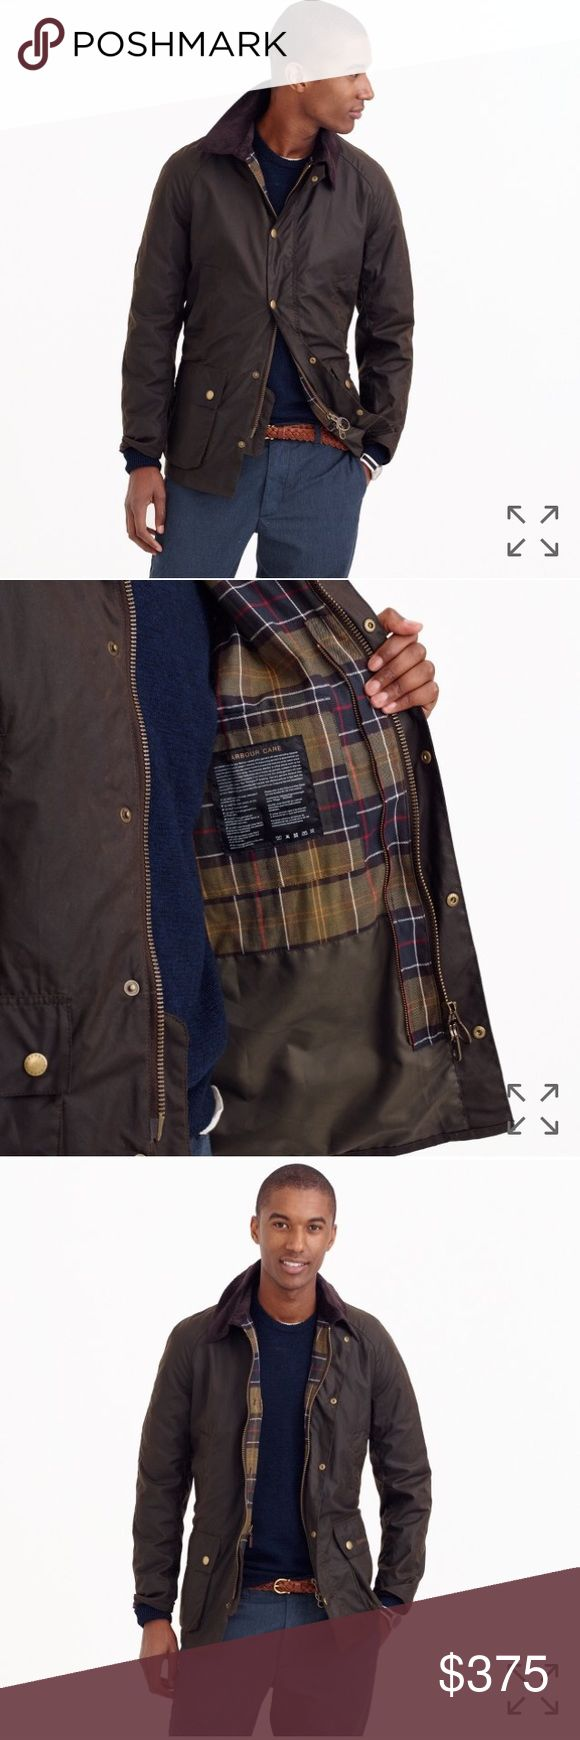 Barbour Sklkoil Ashby Jacket ****color is olive****                                              A more tailored version of the Barbour Bedale jacket, the Ashby is made with the brand's signature Sylkoil waxed cotton with a weatherproof matte finish for a lived-in look. Inspired by the company's Scottish heritage, it's lined in Barbour's original classic tartan.  -Medium-weight waxed Sylkoil cotton. -Corduroy collar. -Hidden zip with snap closure. -Patch pockets. -Lined. -Spot clean…